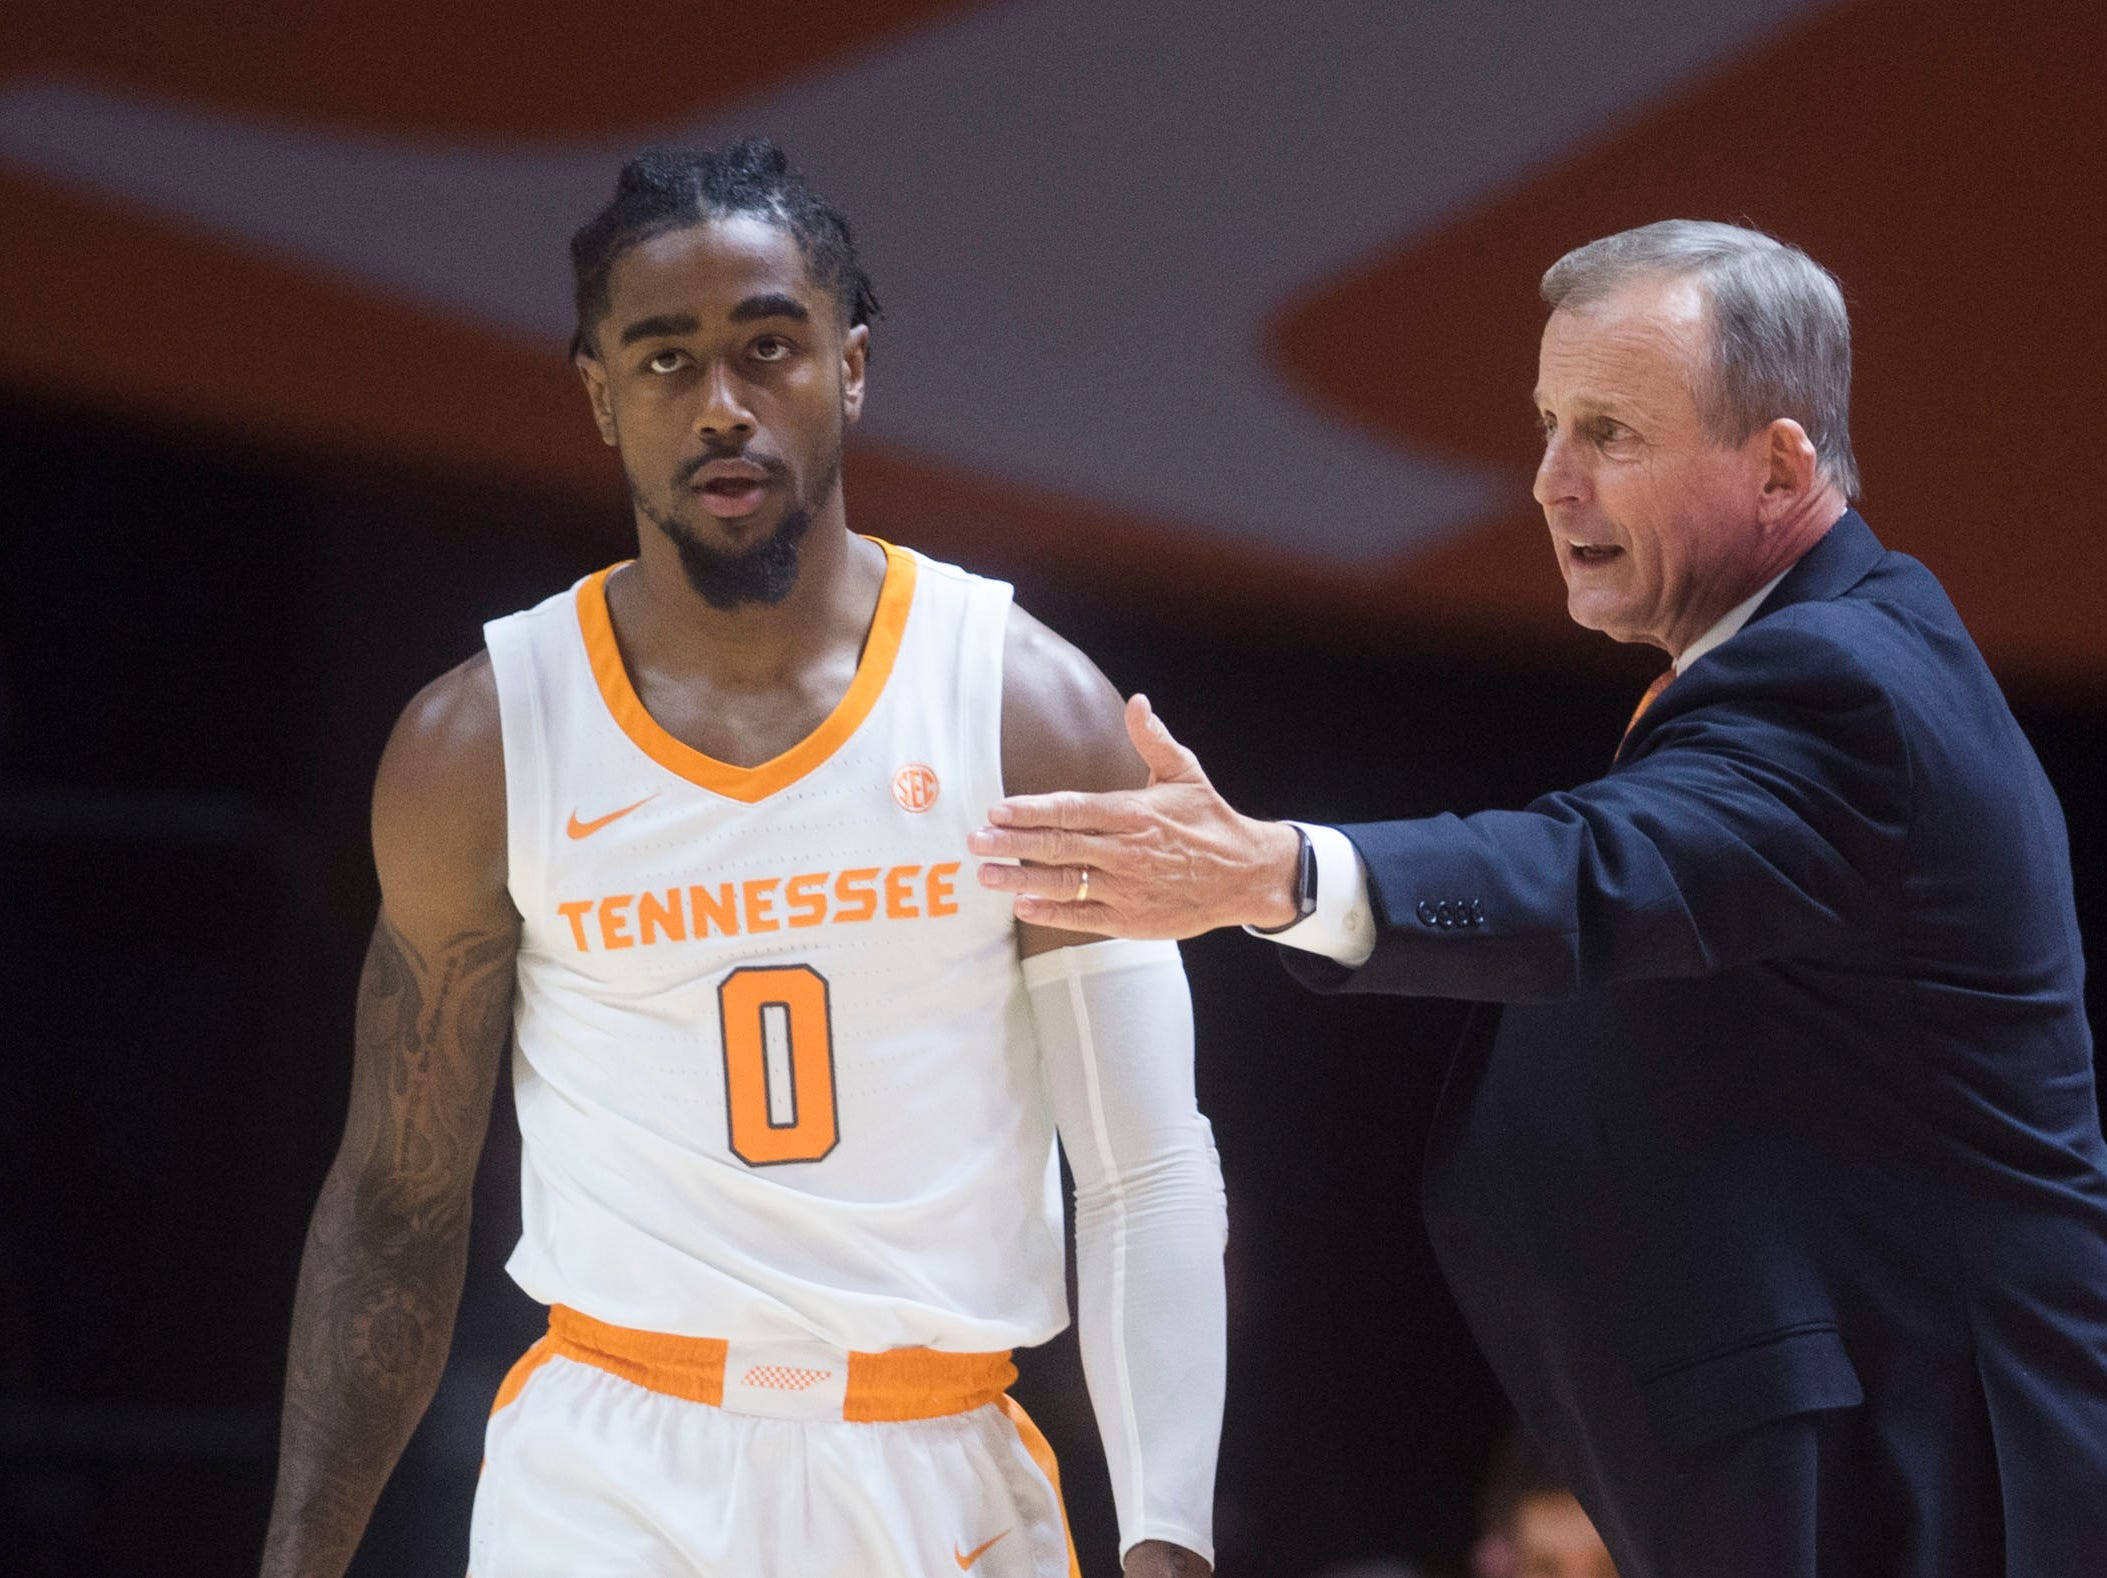 Tennessee head coach Rick Barnes speaks to Tennessee's Jordan Bone (0) from the sidelines during the first half of a NCAA men's basketball game between Tennessee and Eastern Kentucky University at Thompson-Boling Arena Wednesday, Nov. 28, 2018.